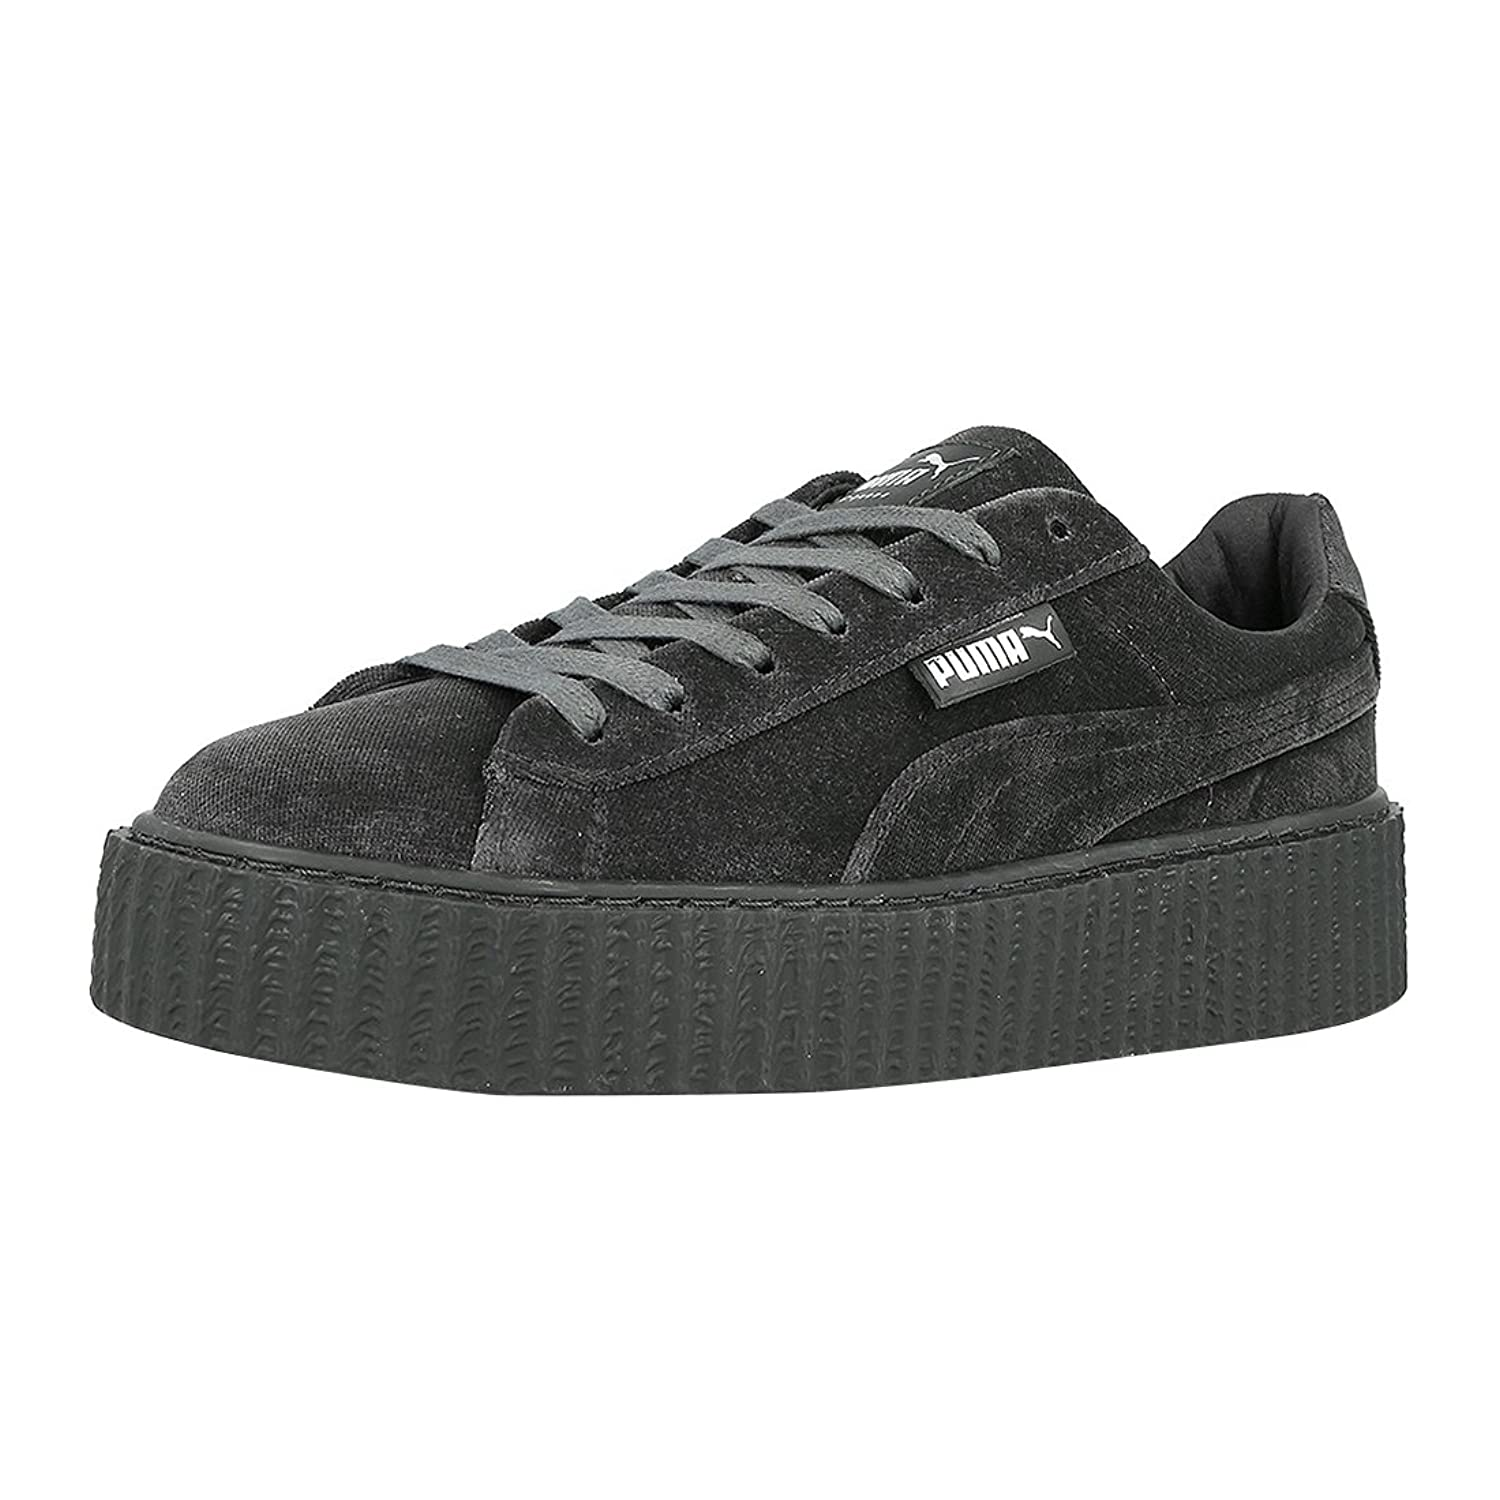 puma rihanna womens creepers. Black Bedroom Furniture Sets. Home Design Ideas